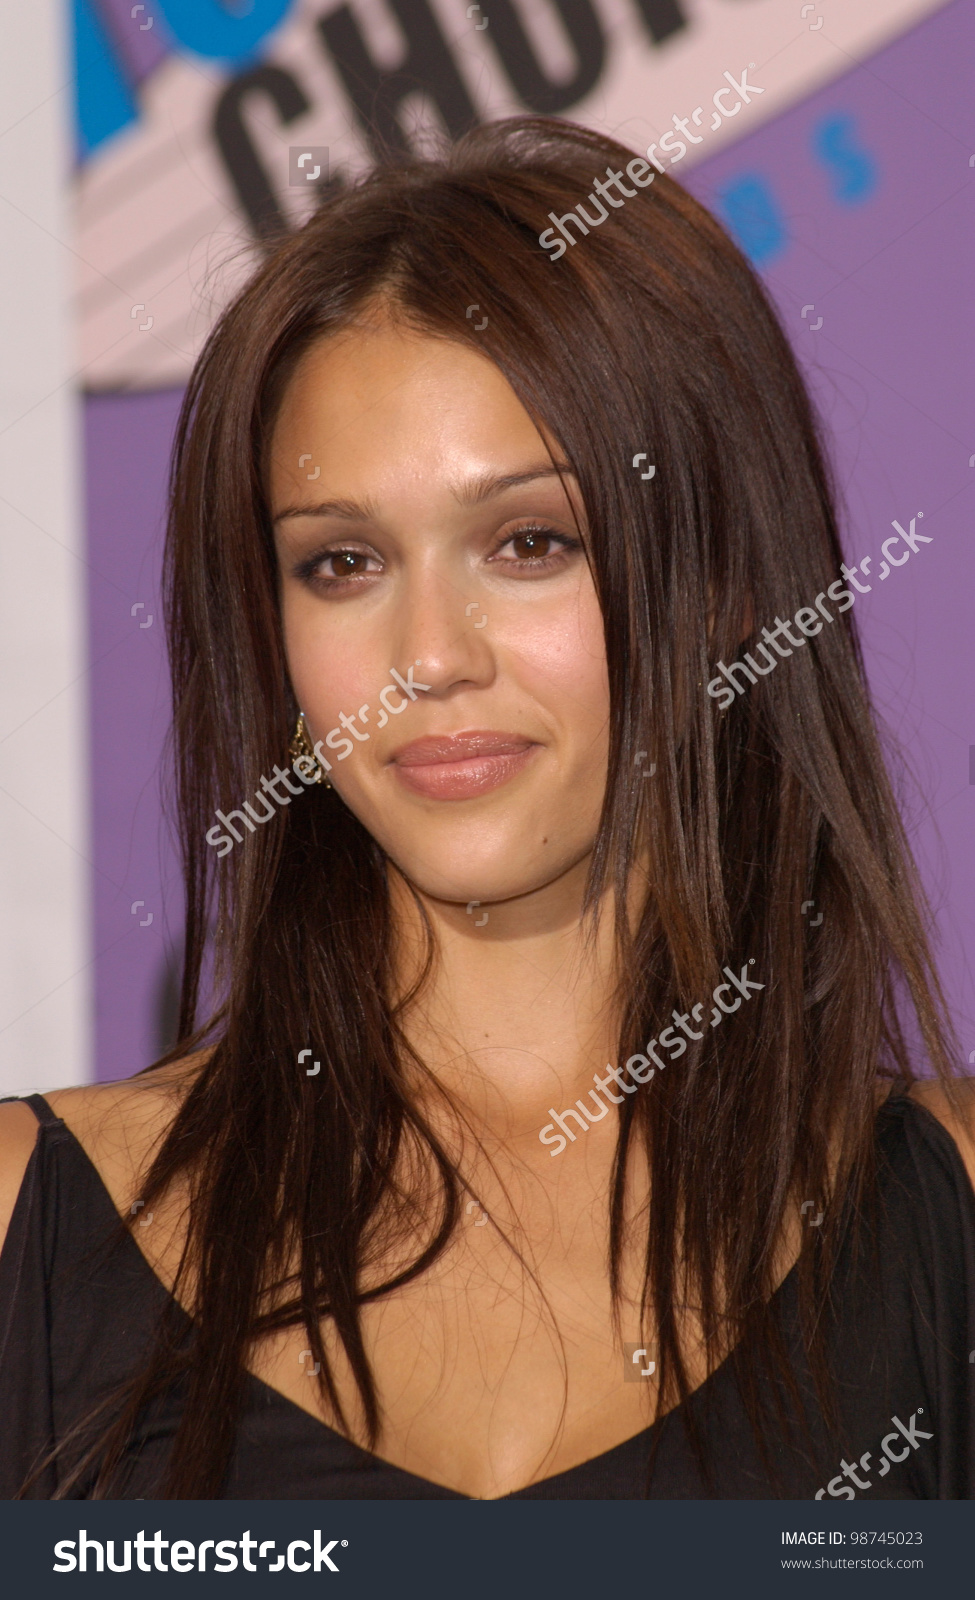 Jessica Alba clipart #8, Download drawings